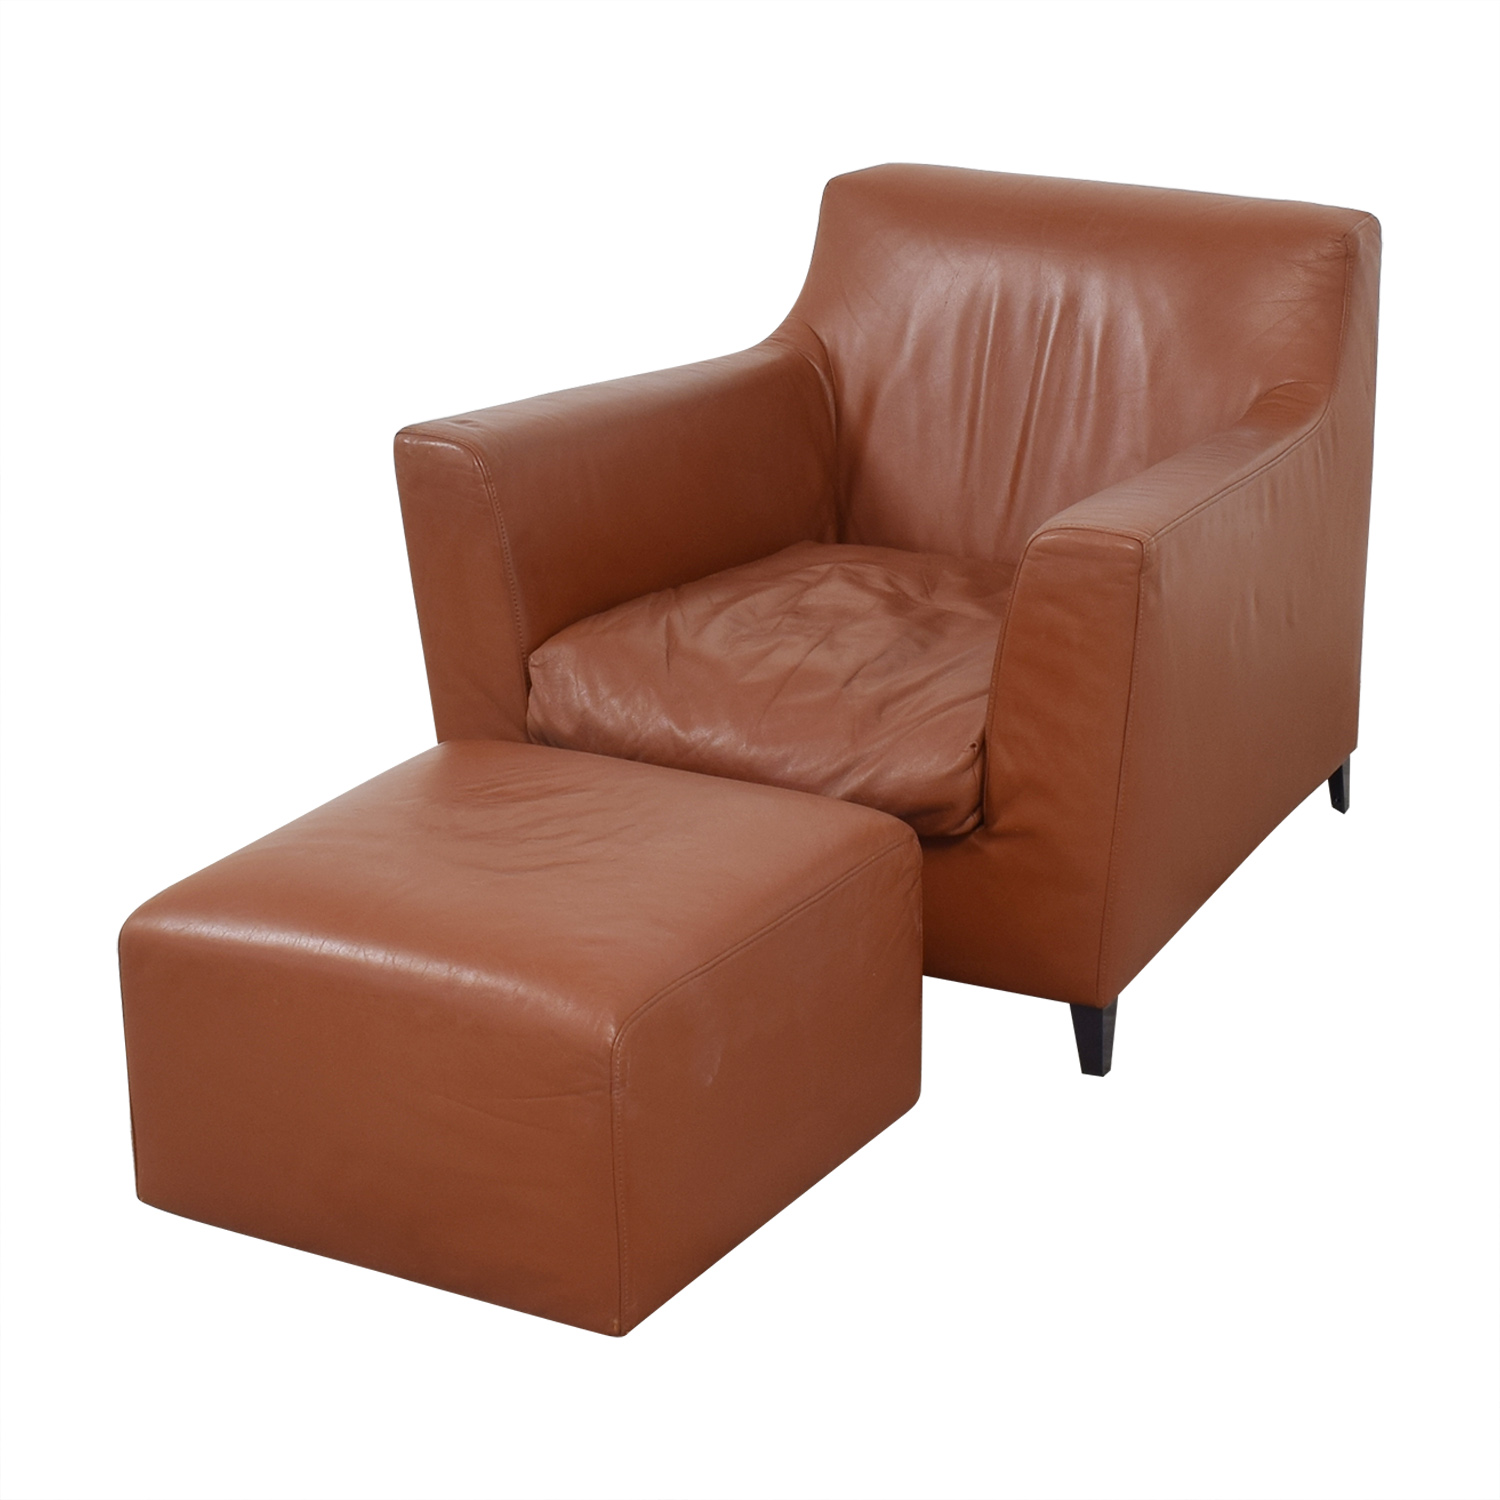 Ligne Roset Rive Droite Armchair with Ottoman / Chairs